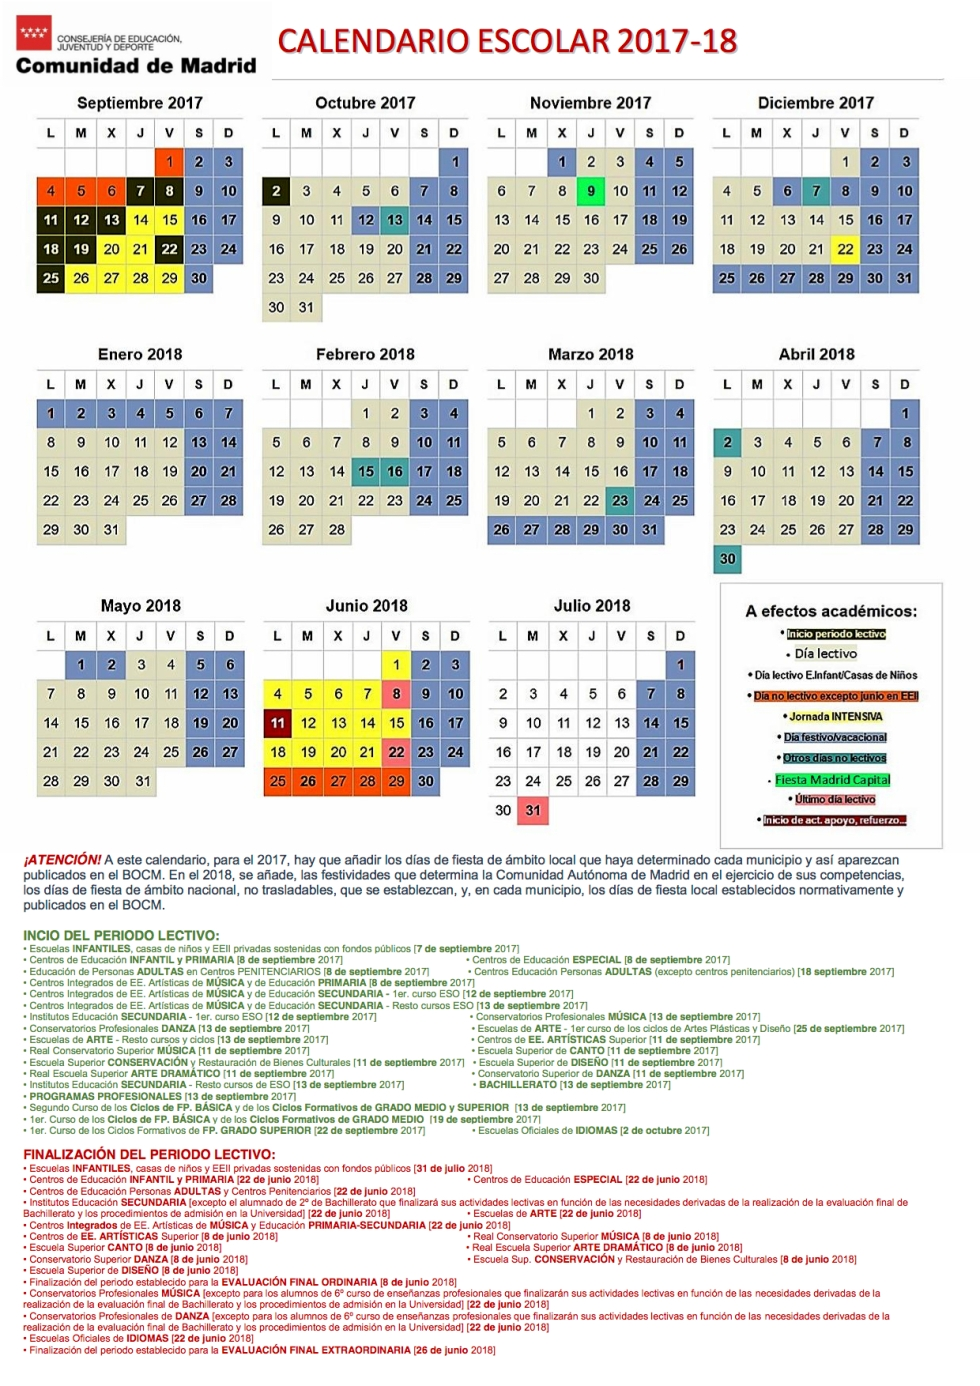 Calendario Academico Madrid.Calendario Escolar 2017 2018 Madrid Plaza Sindical